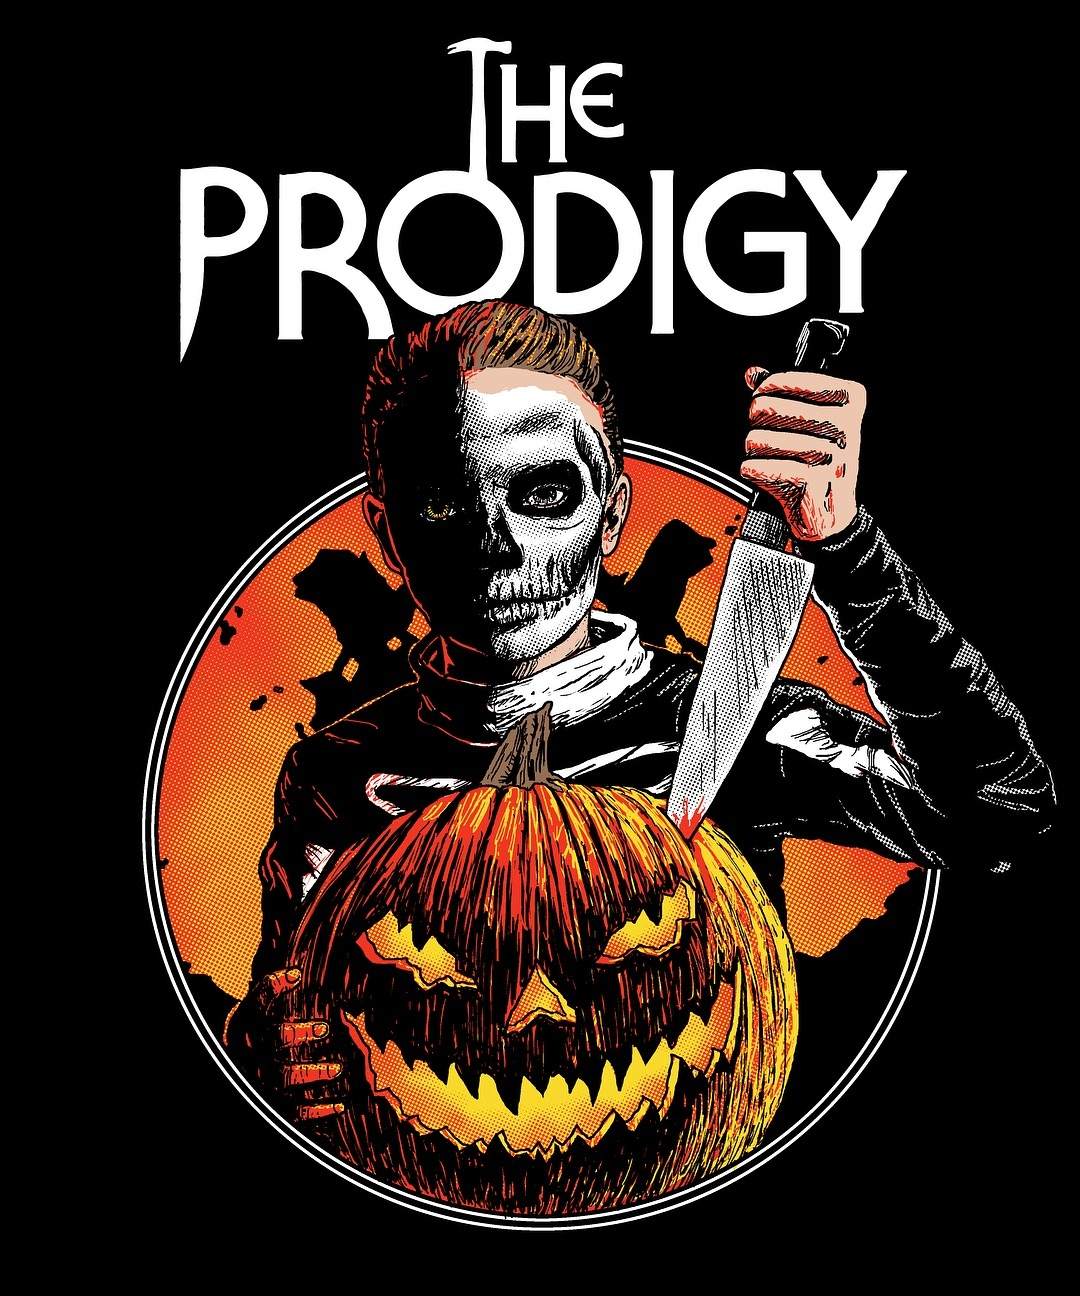 c510ba0e Cavity Colors partnered with ORION PICTURES to commemorate the theatrical  release of THE PRODIGY. There's an image of Miles in the film, with his  skull face ...